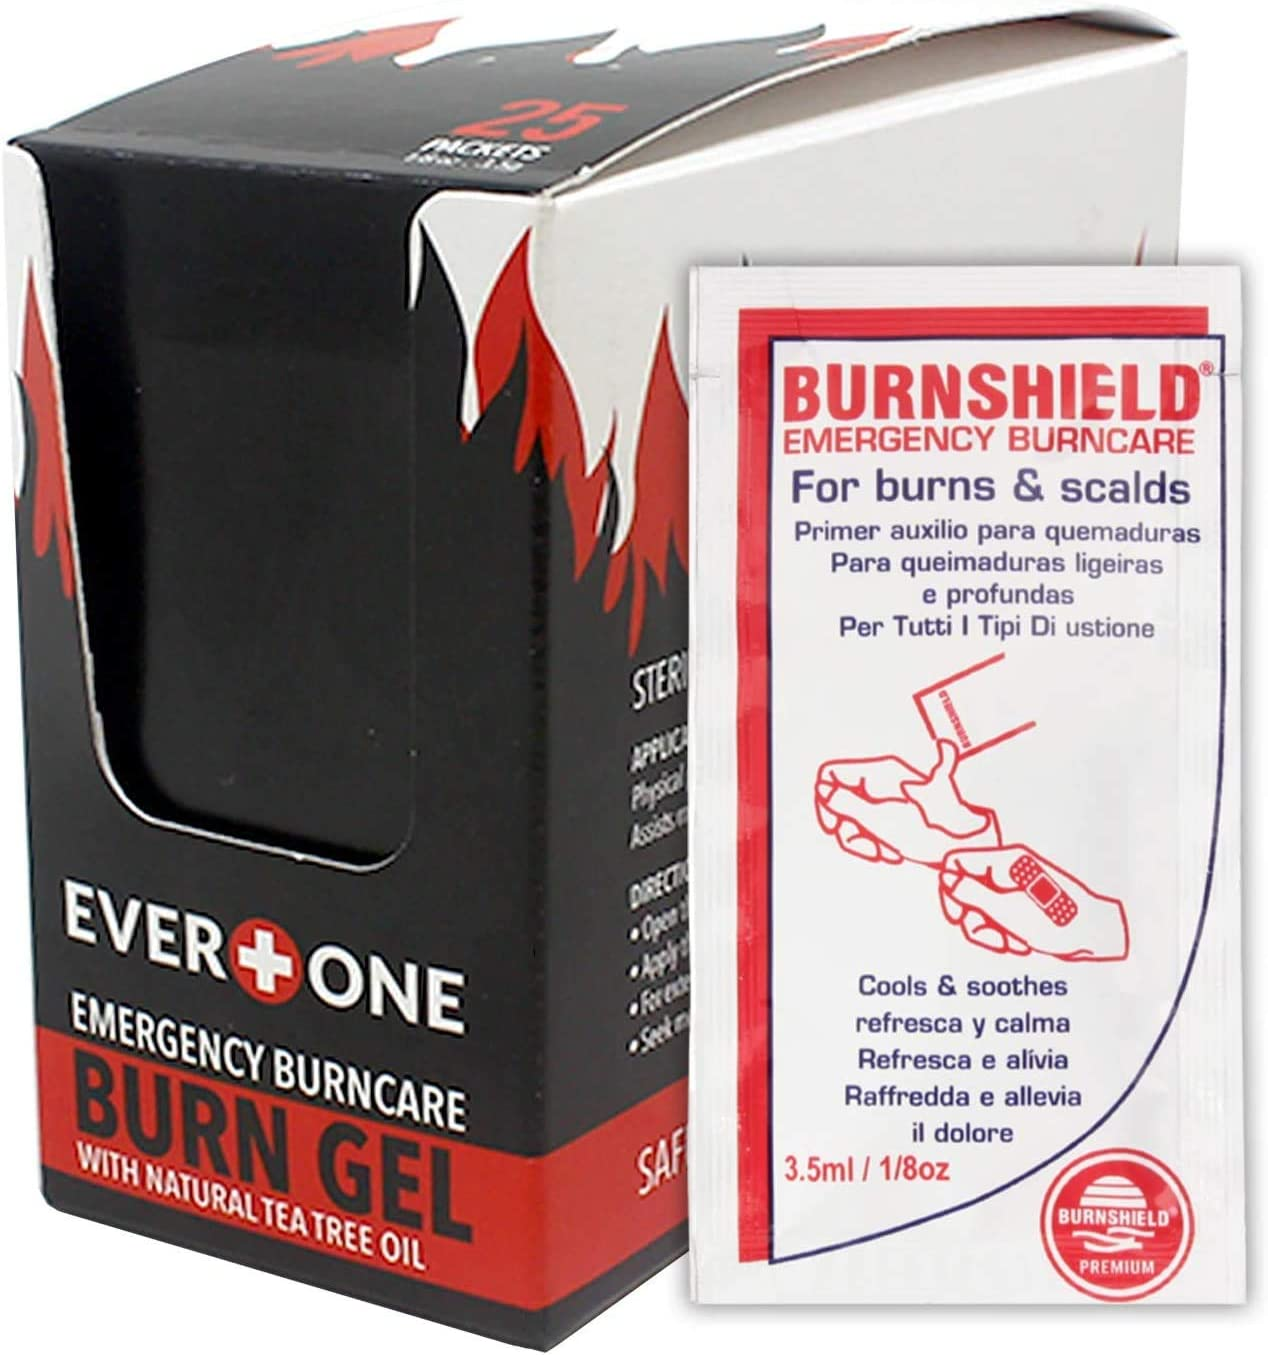 EverOne Emergency Burncare Burn Gel, 3.5g Packets, 25 Count: Health & Personal Care